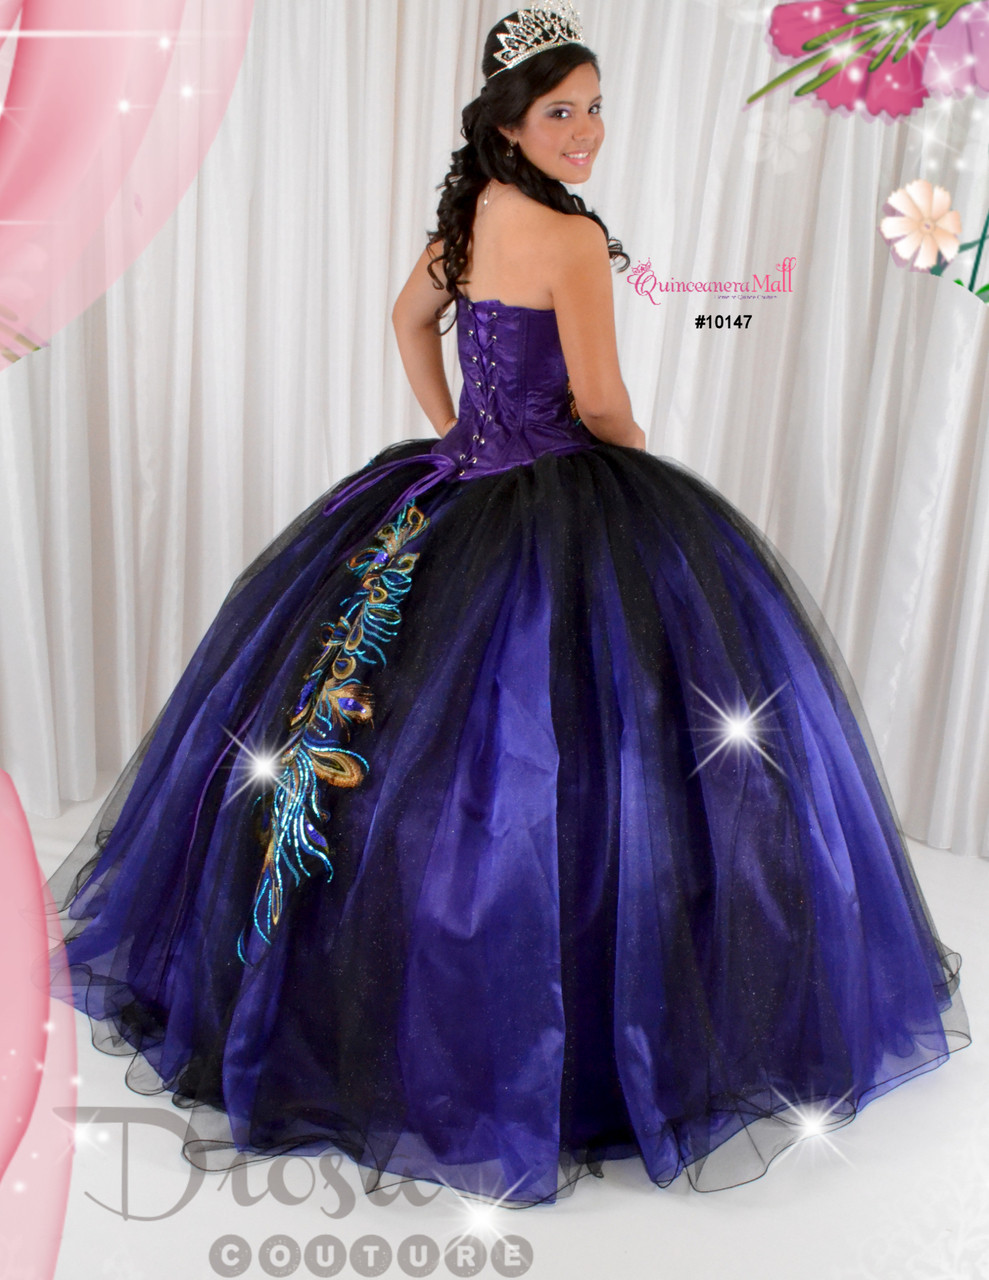 a845a6ae64 Quinceanera Peacock Dress  10147JES - Joyful Events Store